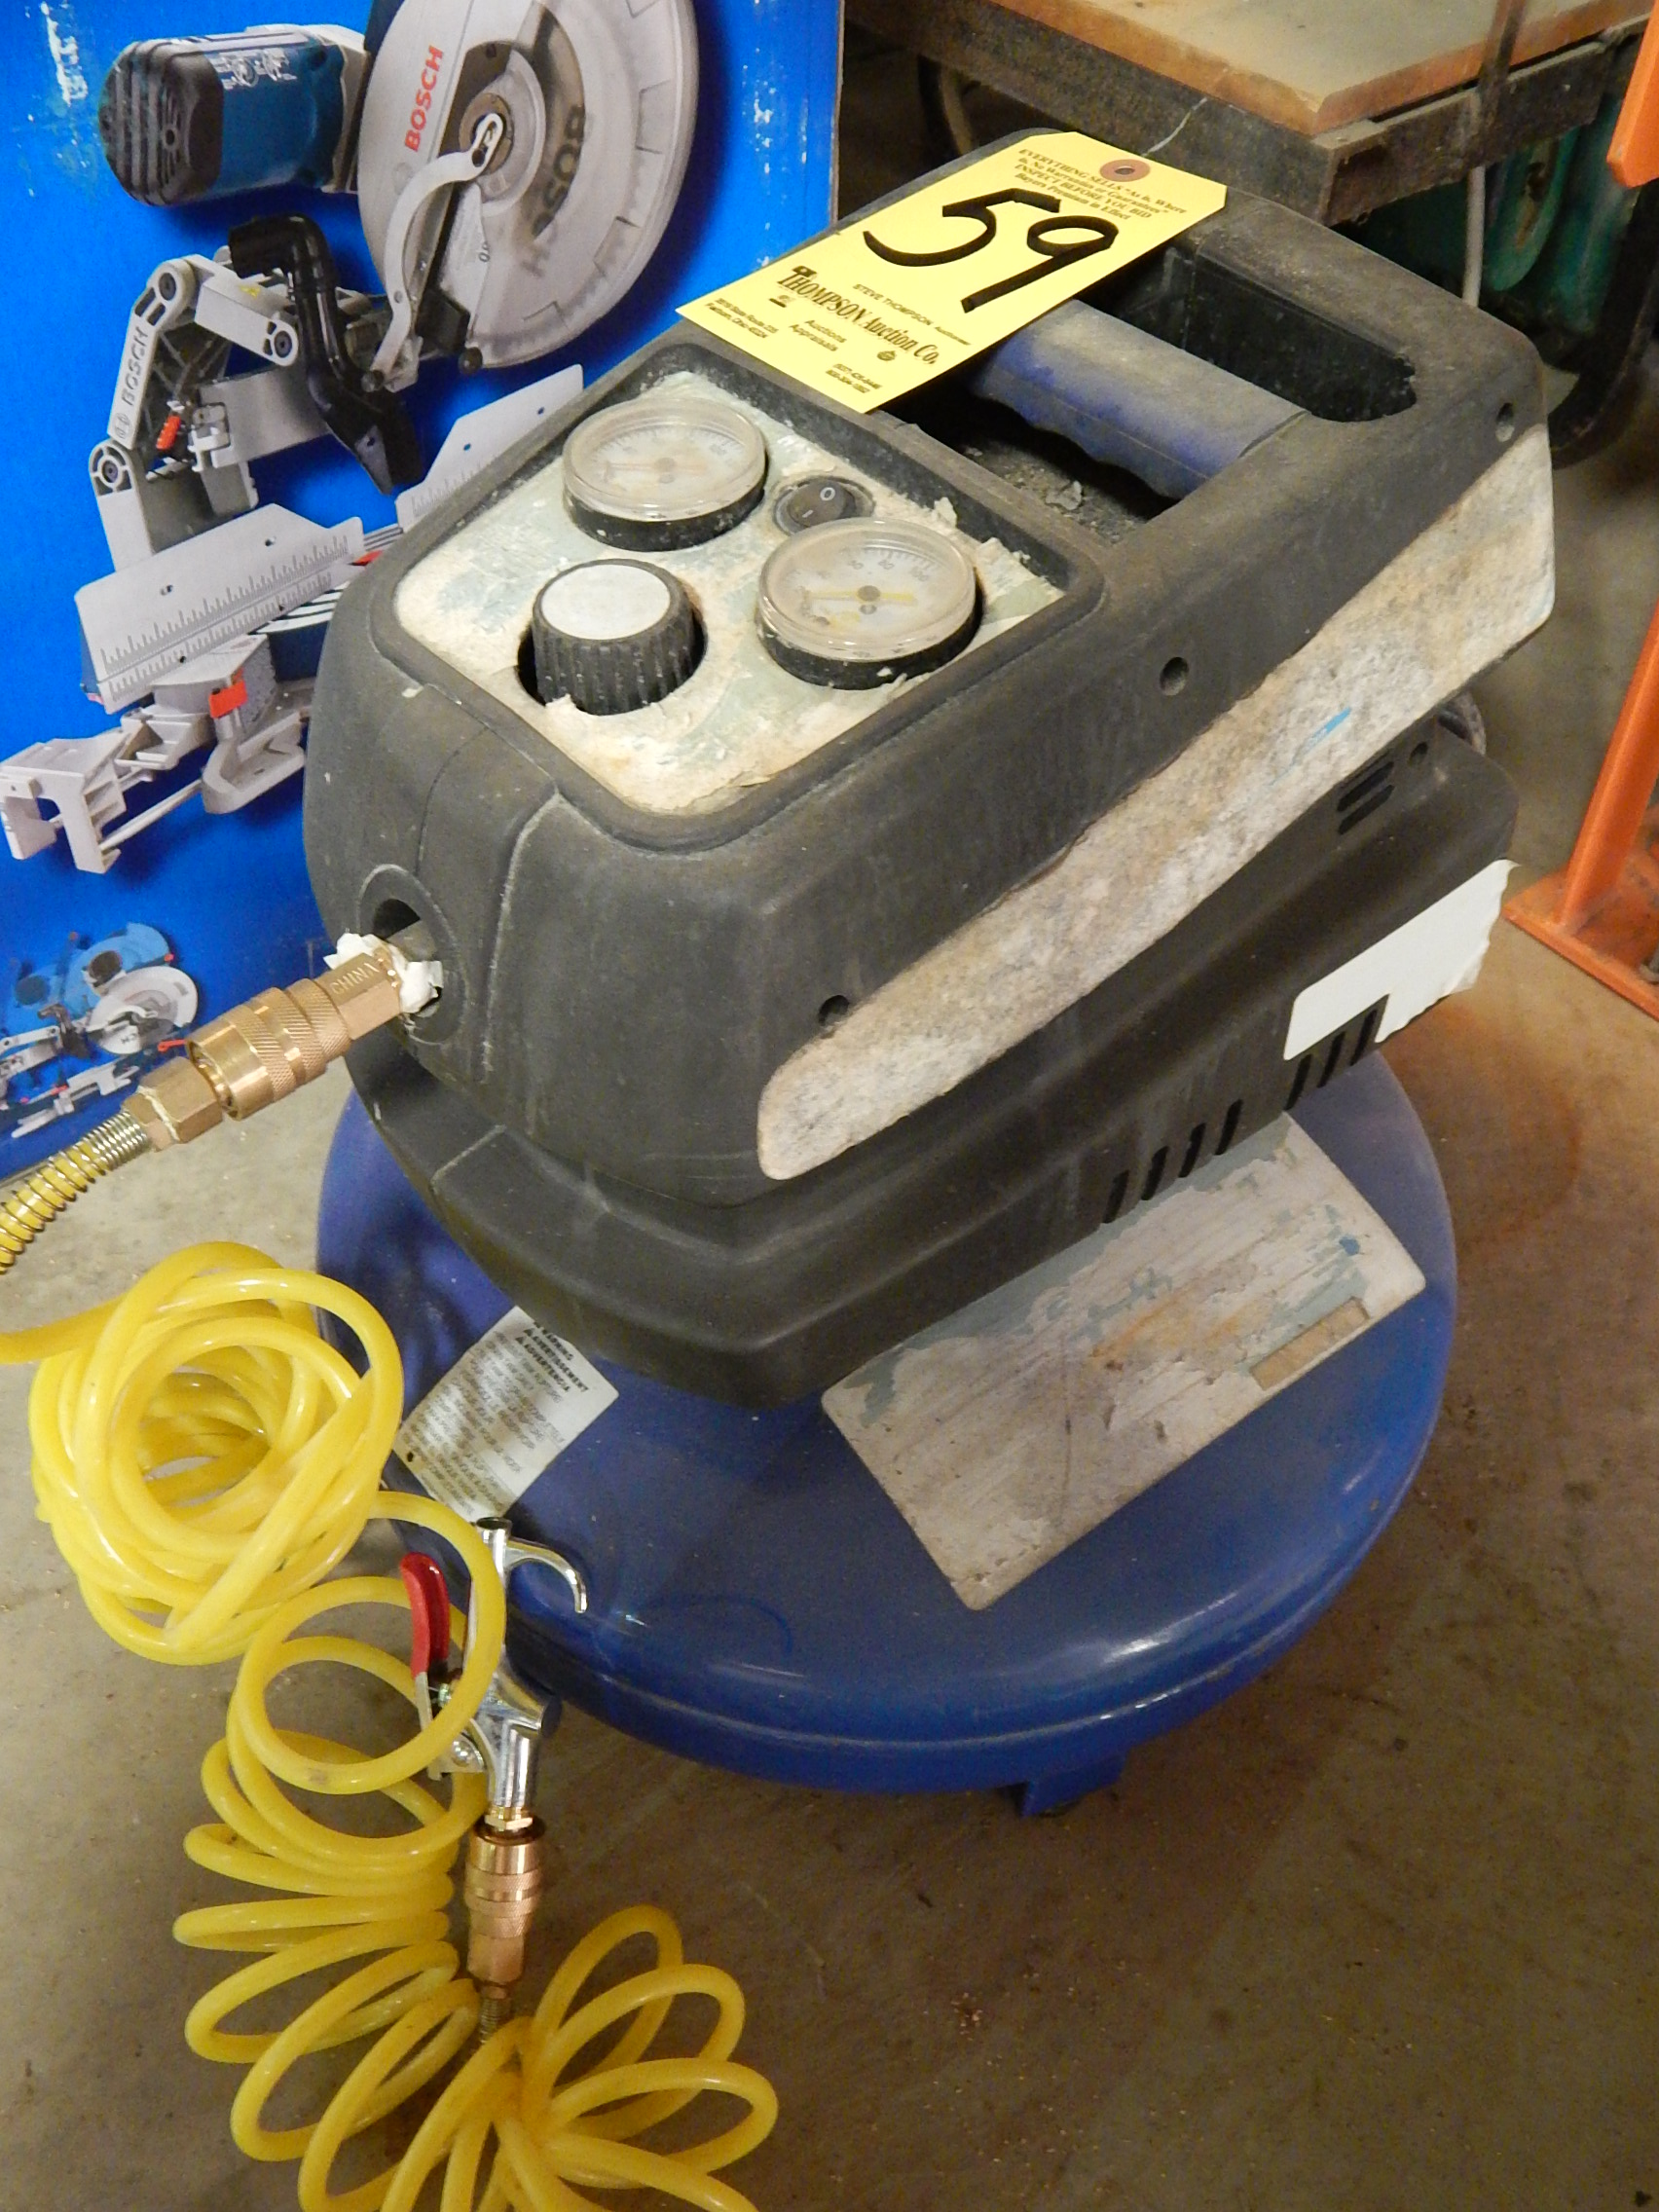 Lot 59 - Portable Air Compressor, 125 PSI, 4 Gallon Tank